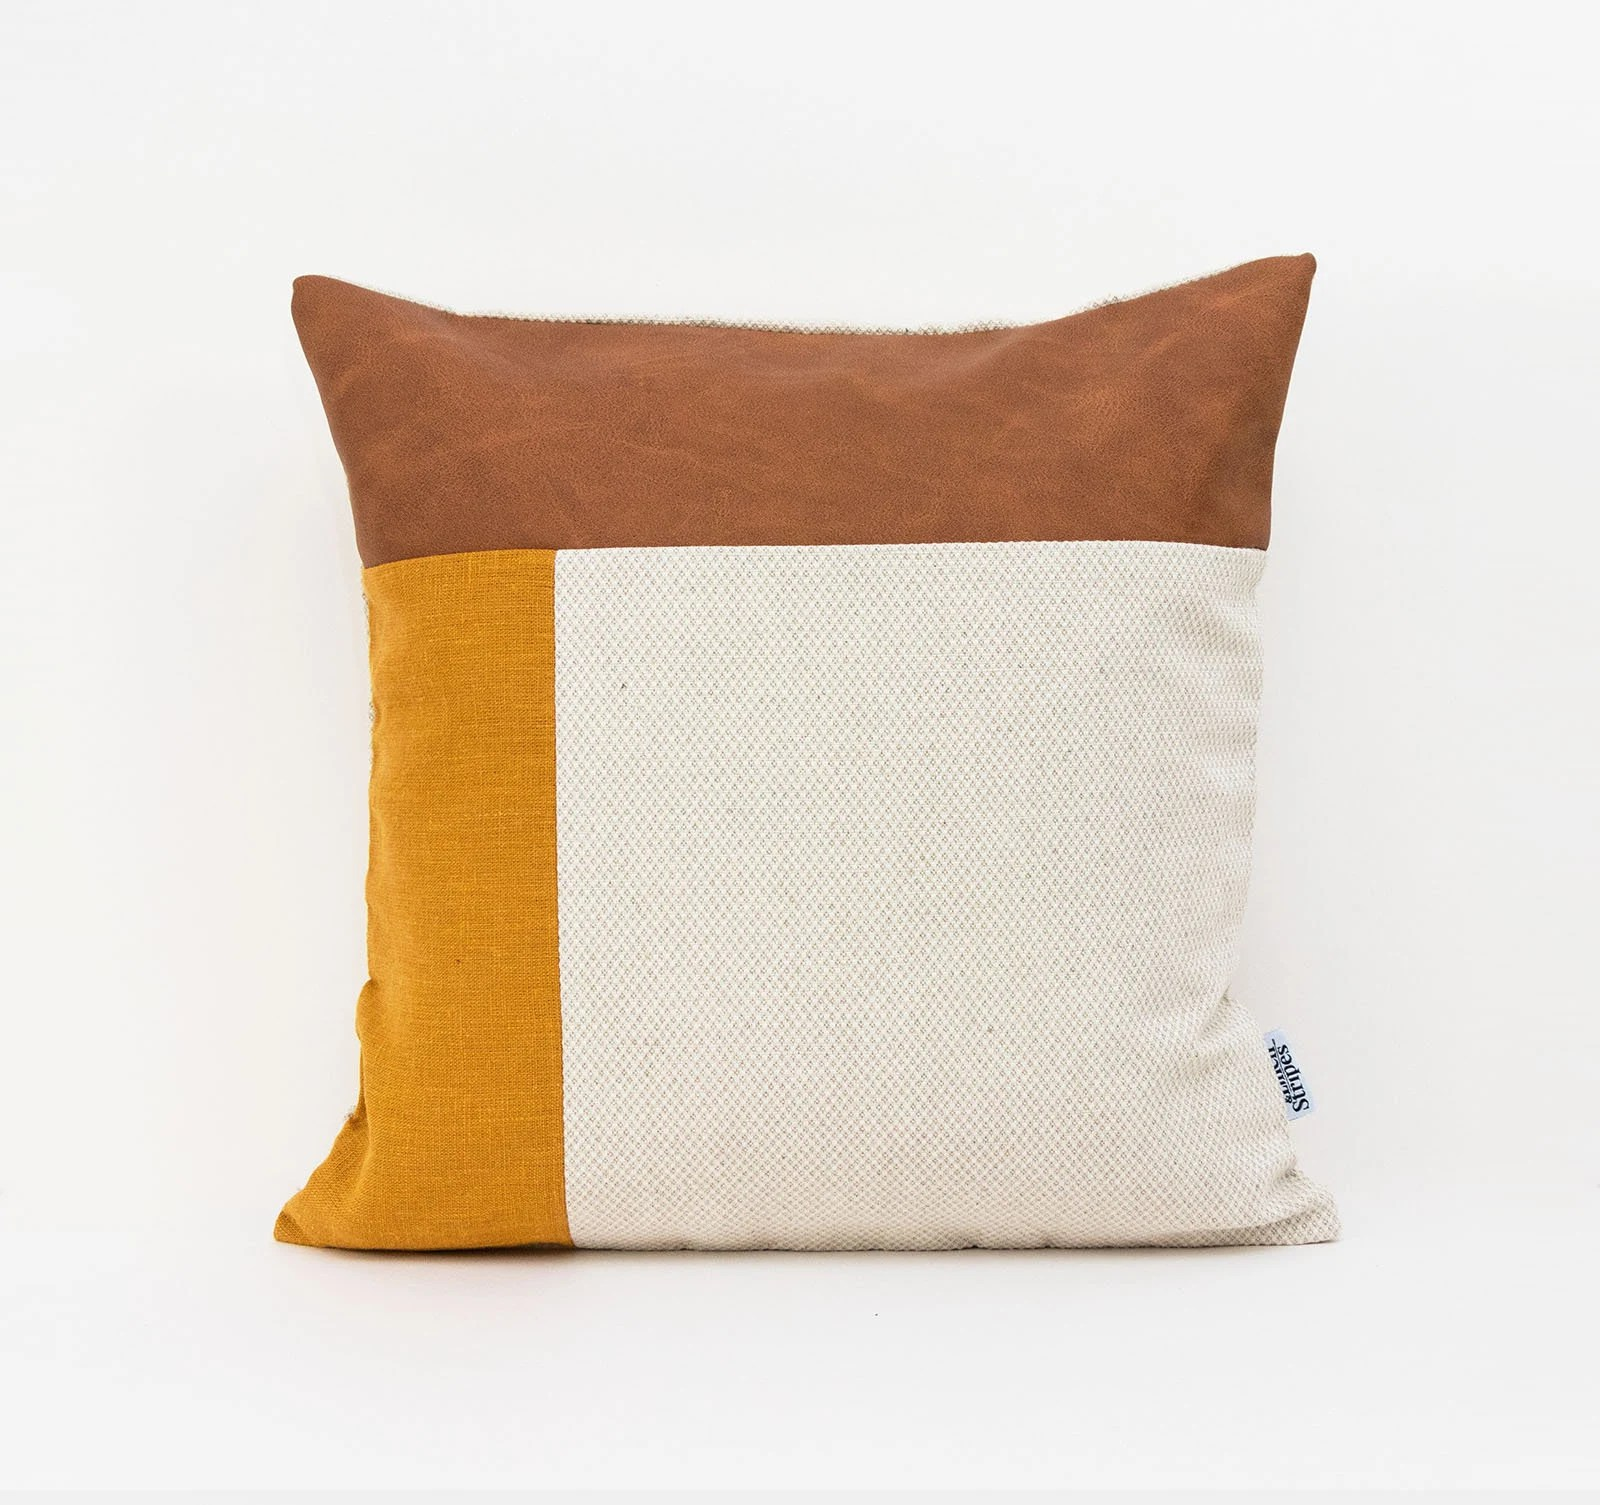 eco friendly linen pillow covers 20x20 pillow case fall mustard cushion cover geometric pillow case faux leather cushion covers uk